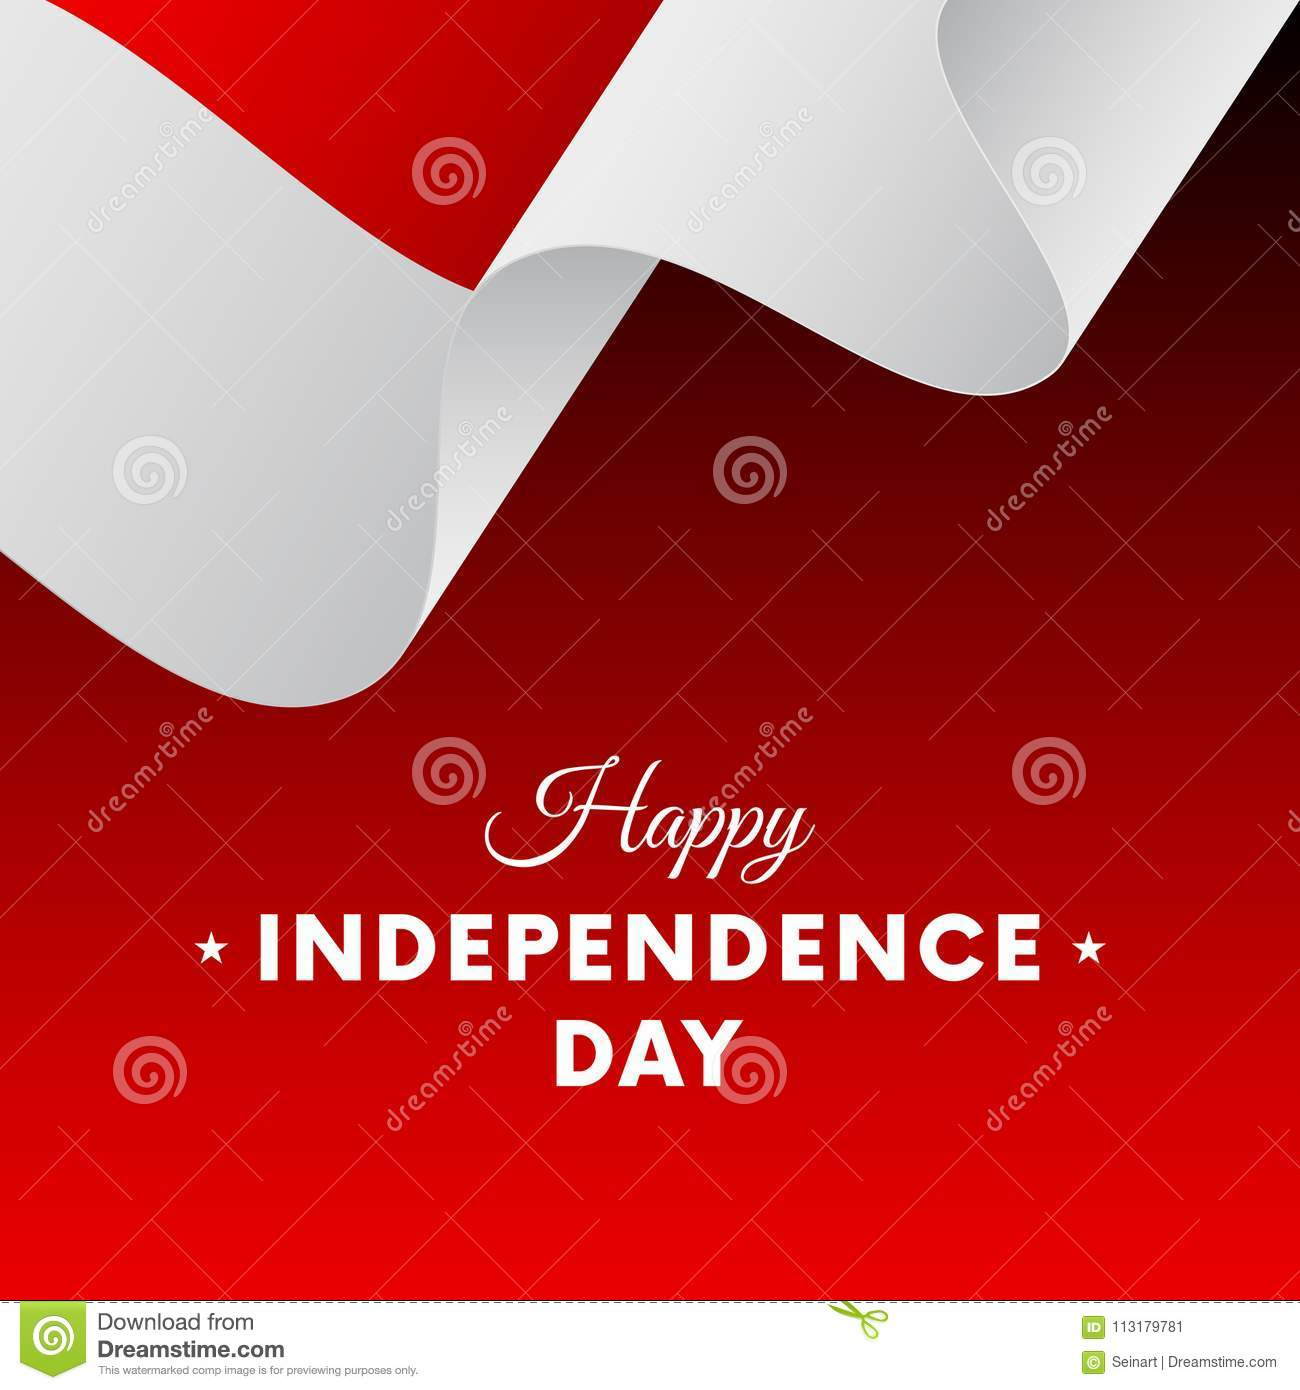 Download Banner Or Poster Of Indonesia Independence